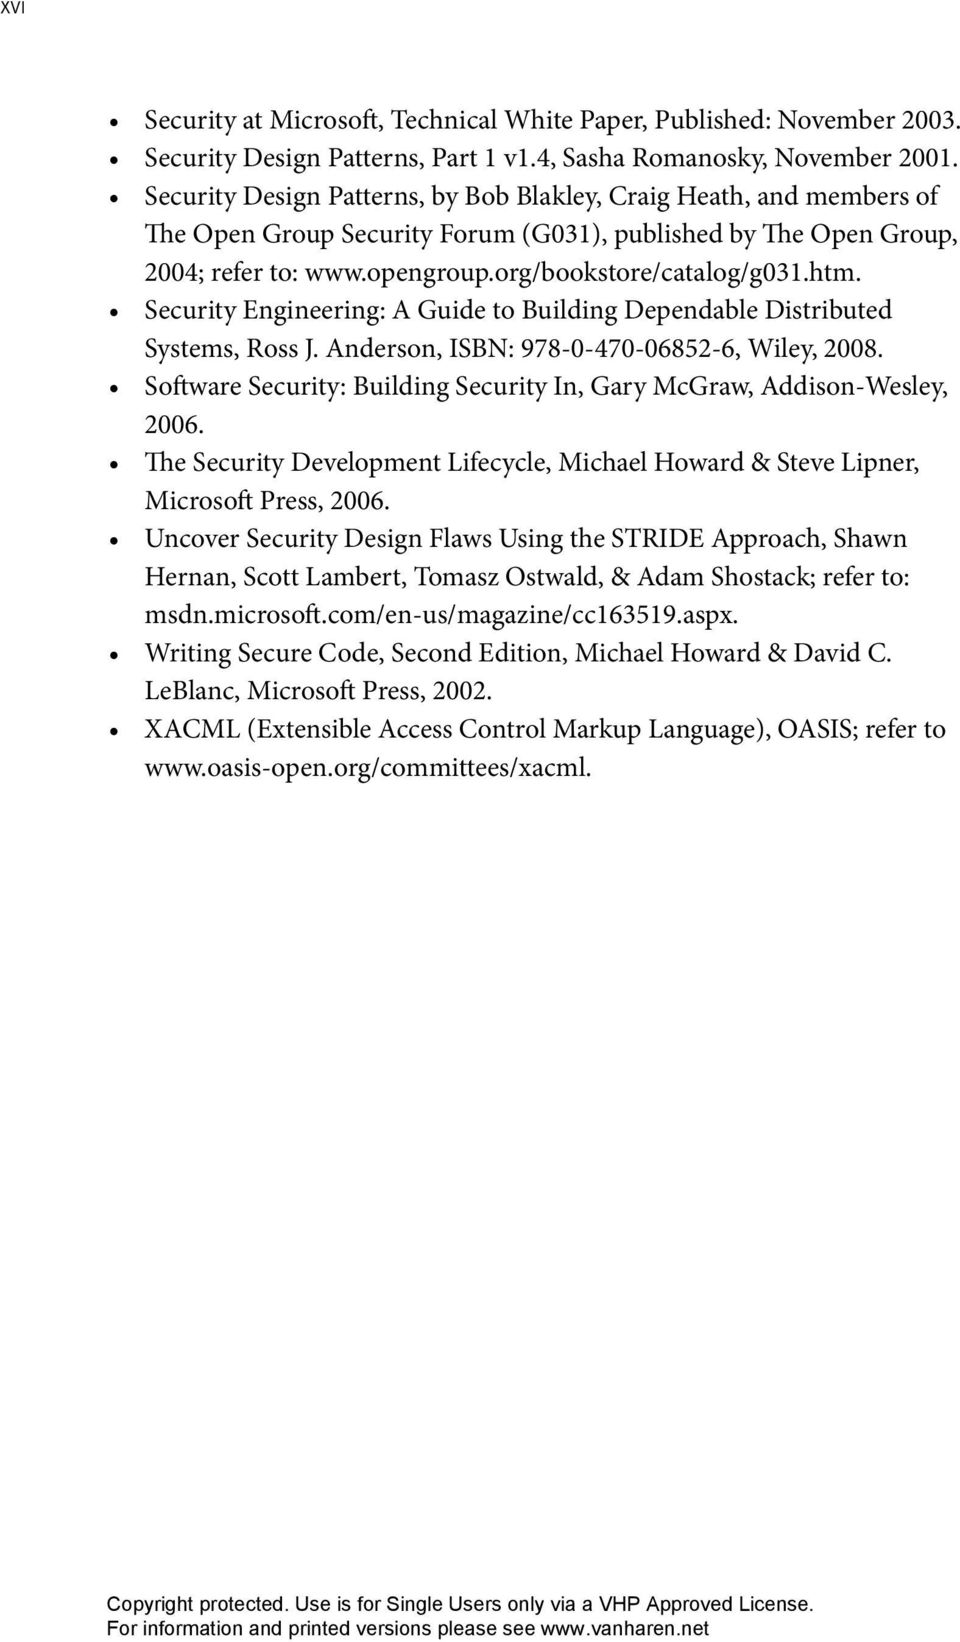 Security Engineering: A Guide to Building Dependable Distributed Systems, Ross J. Anderson, ISBN: 978-0-470-06852-6, Wiley, 2008.